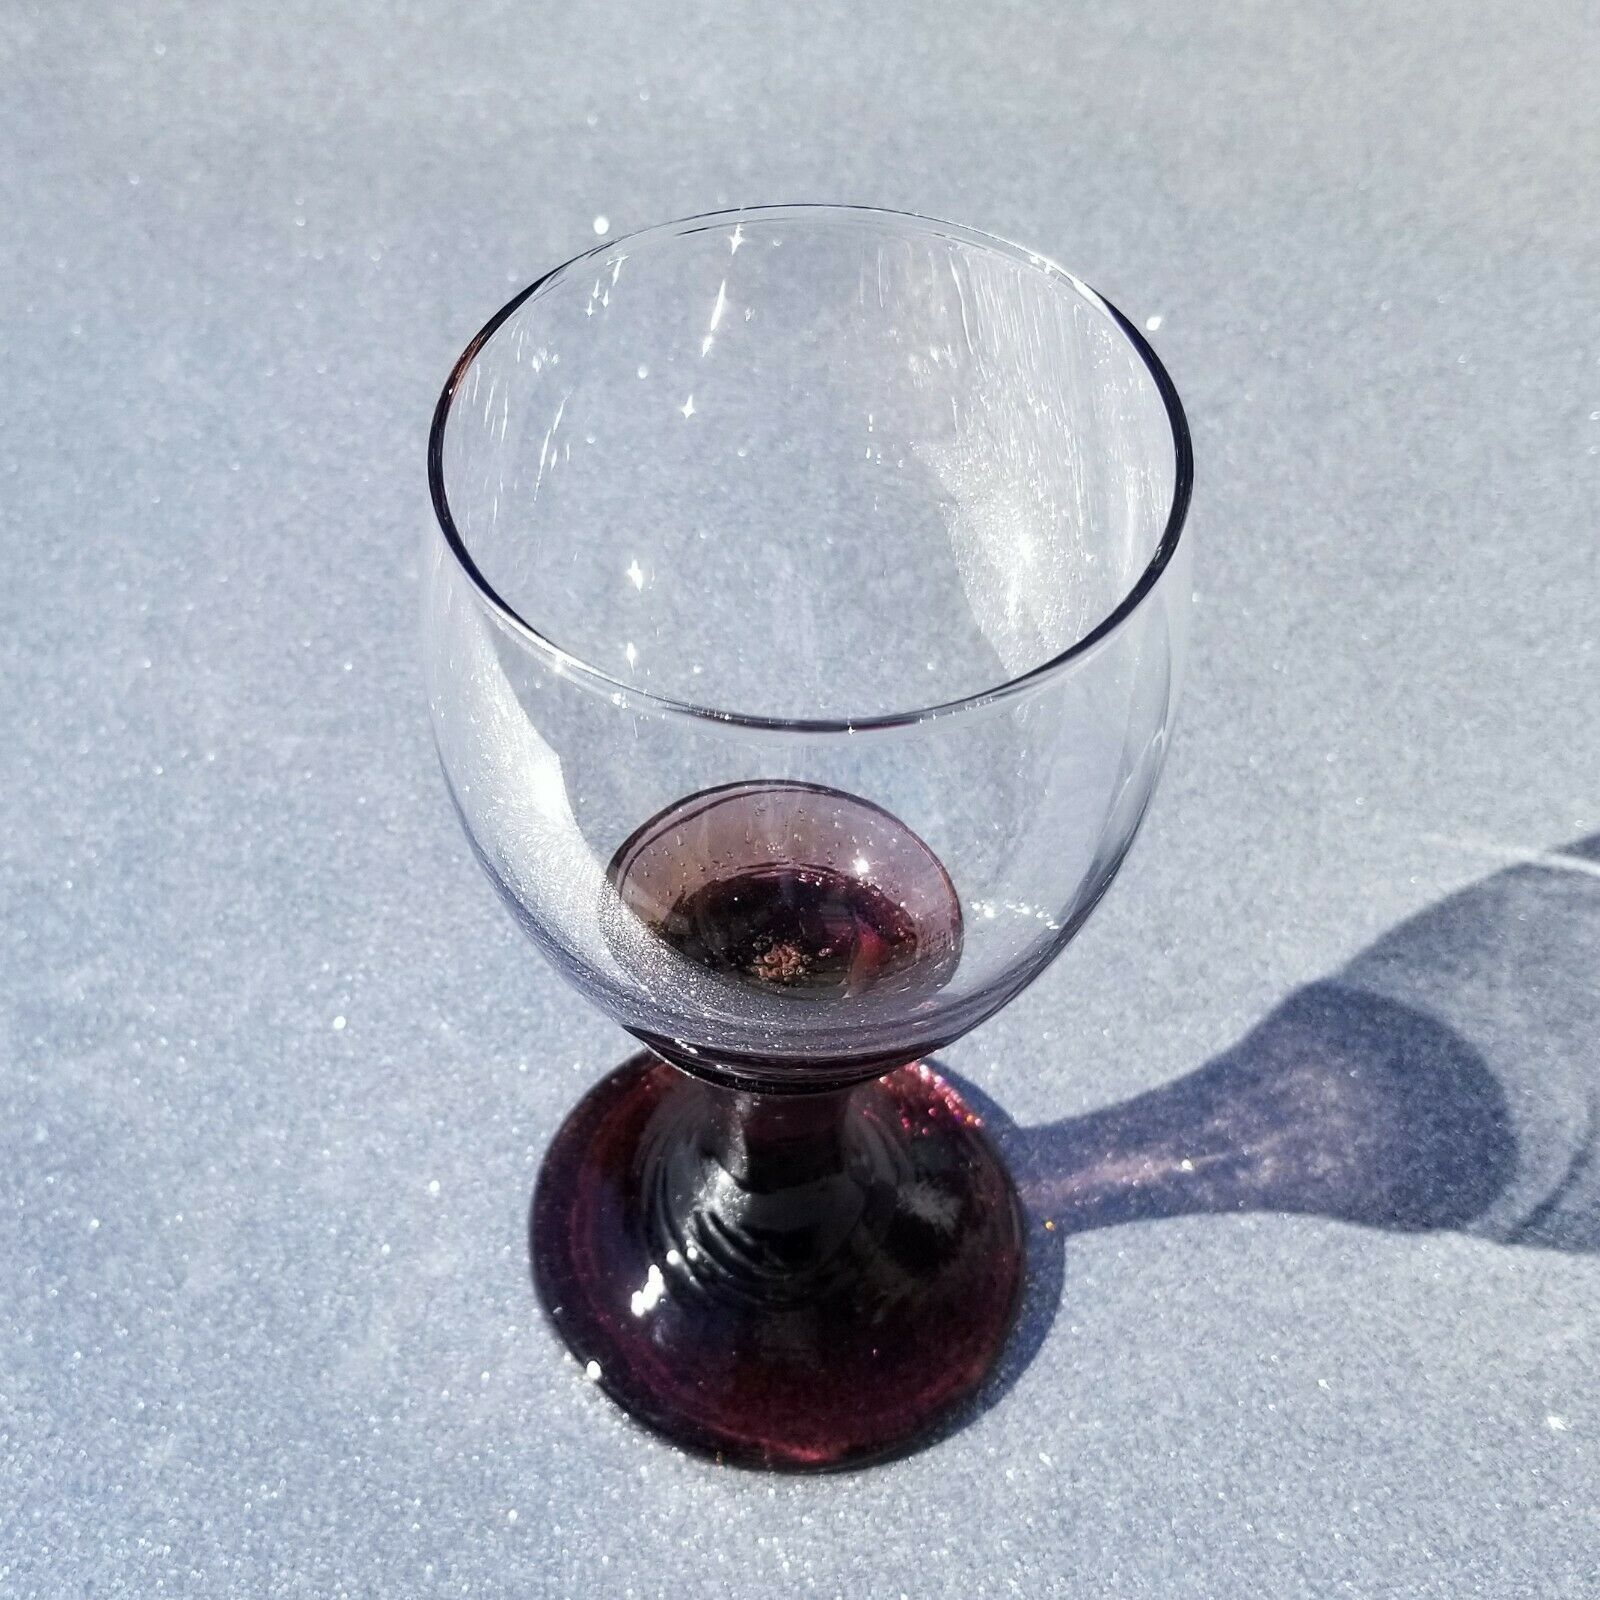 BRAND NEW SIGNED Plum Goblet Fire And Light Recycled Glass  - $175.00